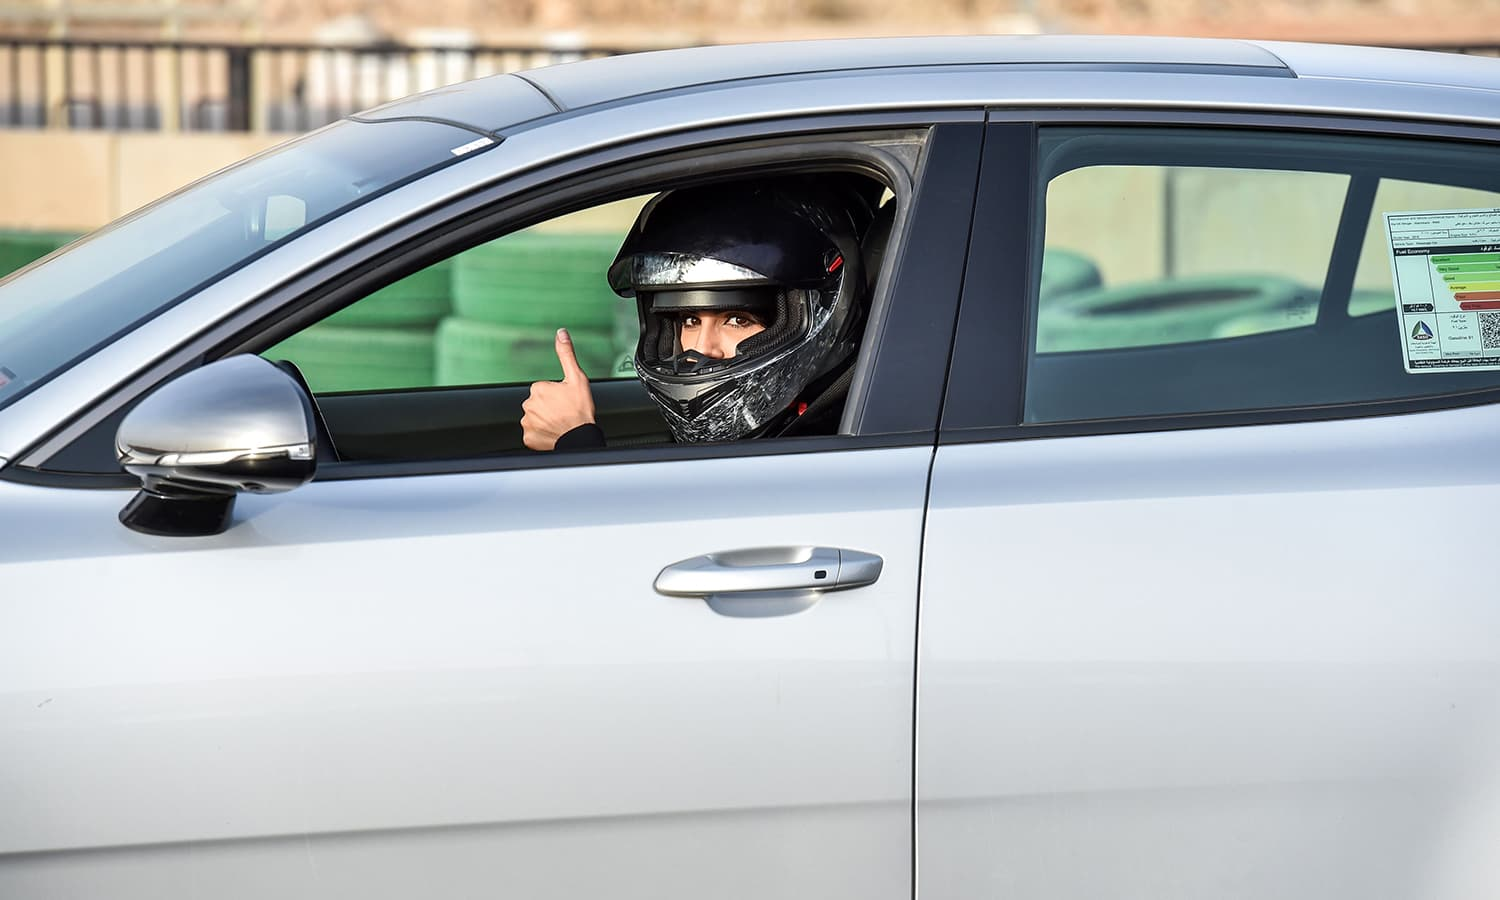 Rana Almimoni poses with the thumbs-up gesture in her car. — AFP